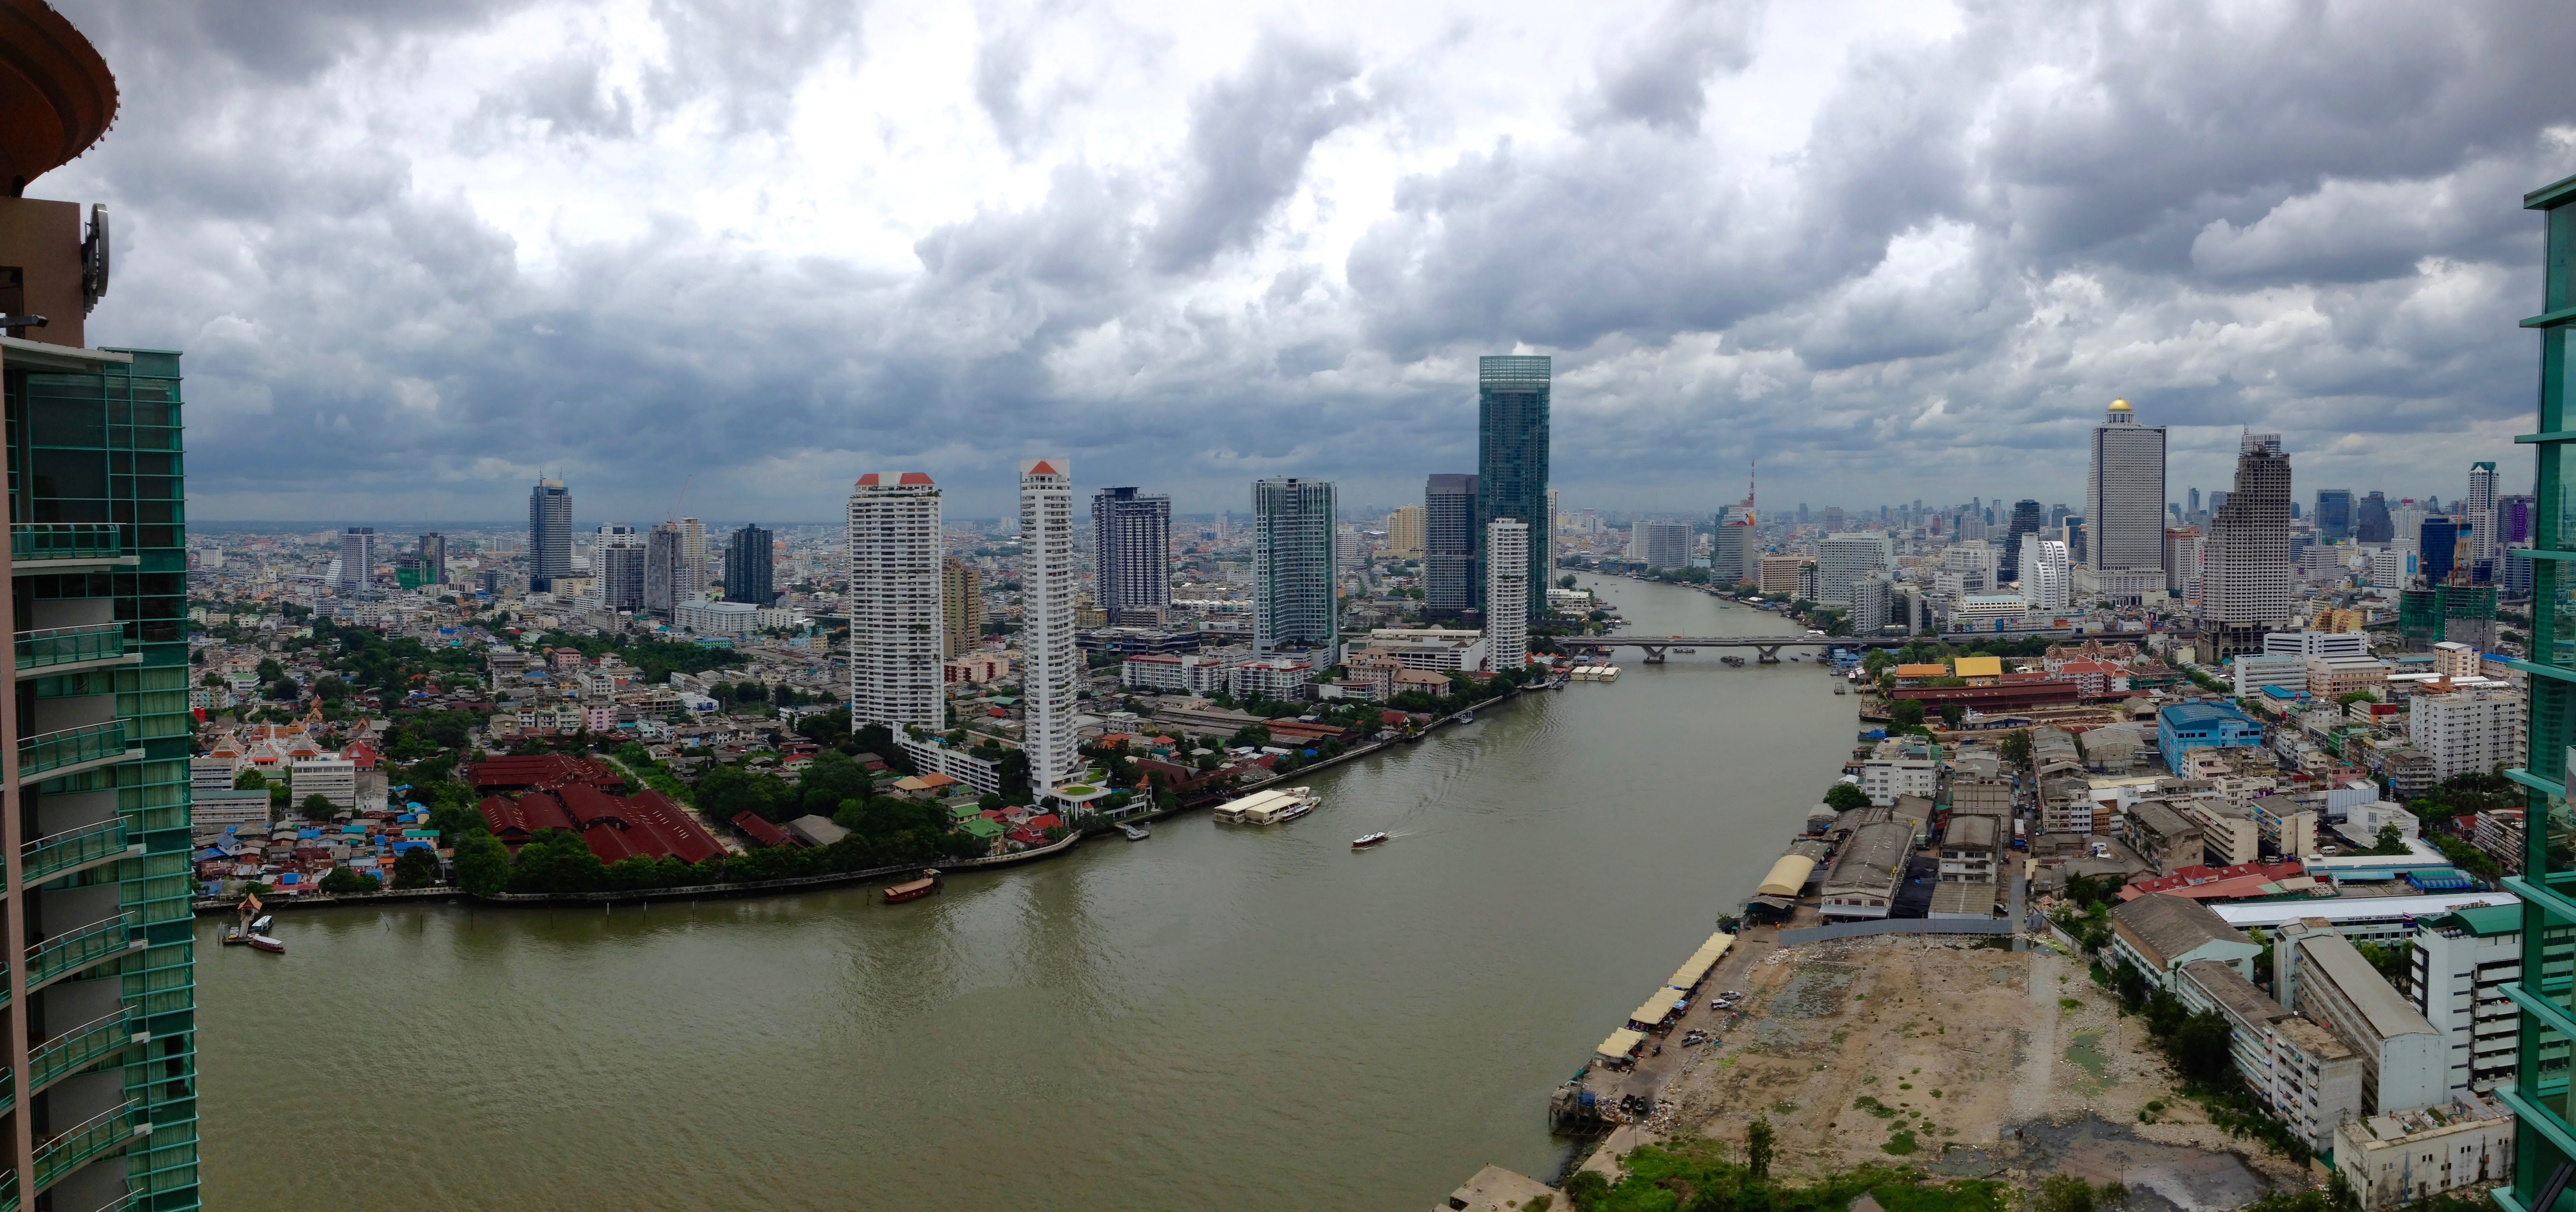 An aerial view of Bangkok showing skyscrapers on both sides of a river.